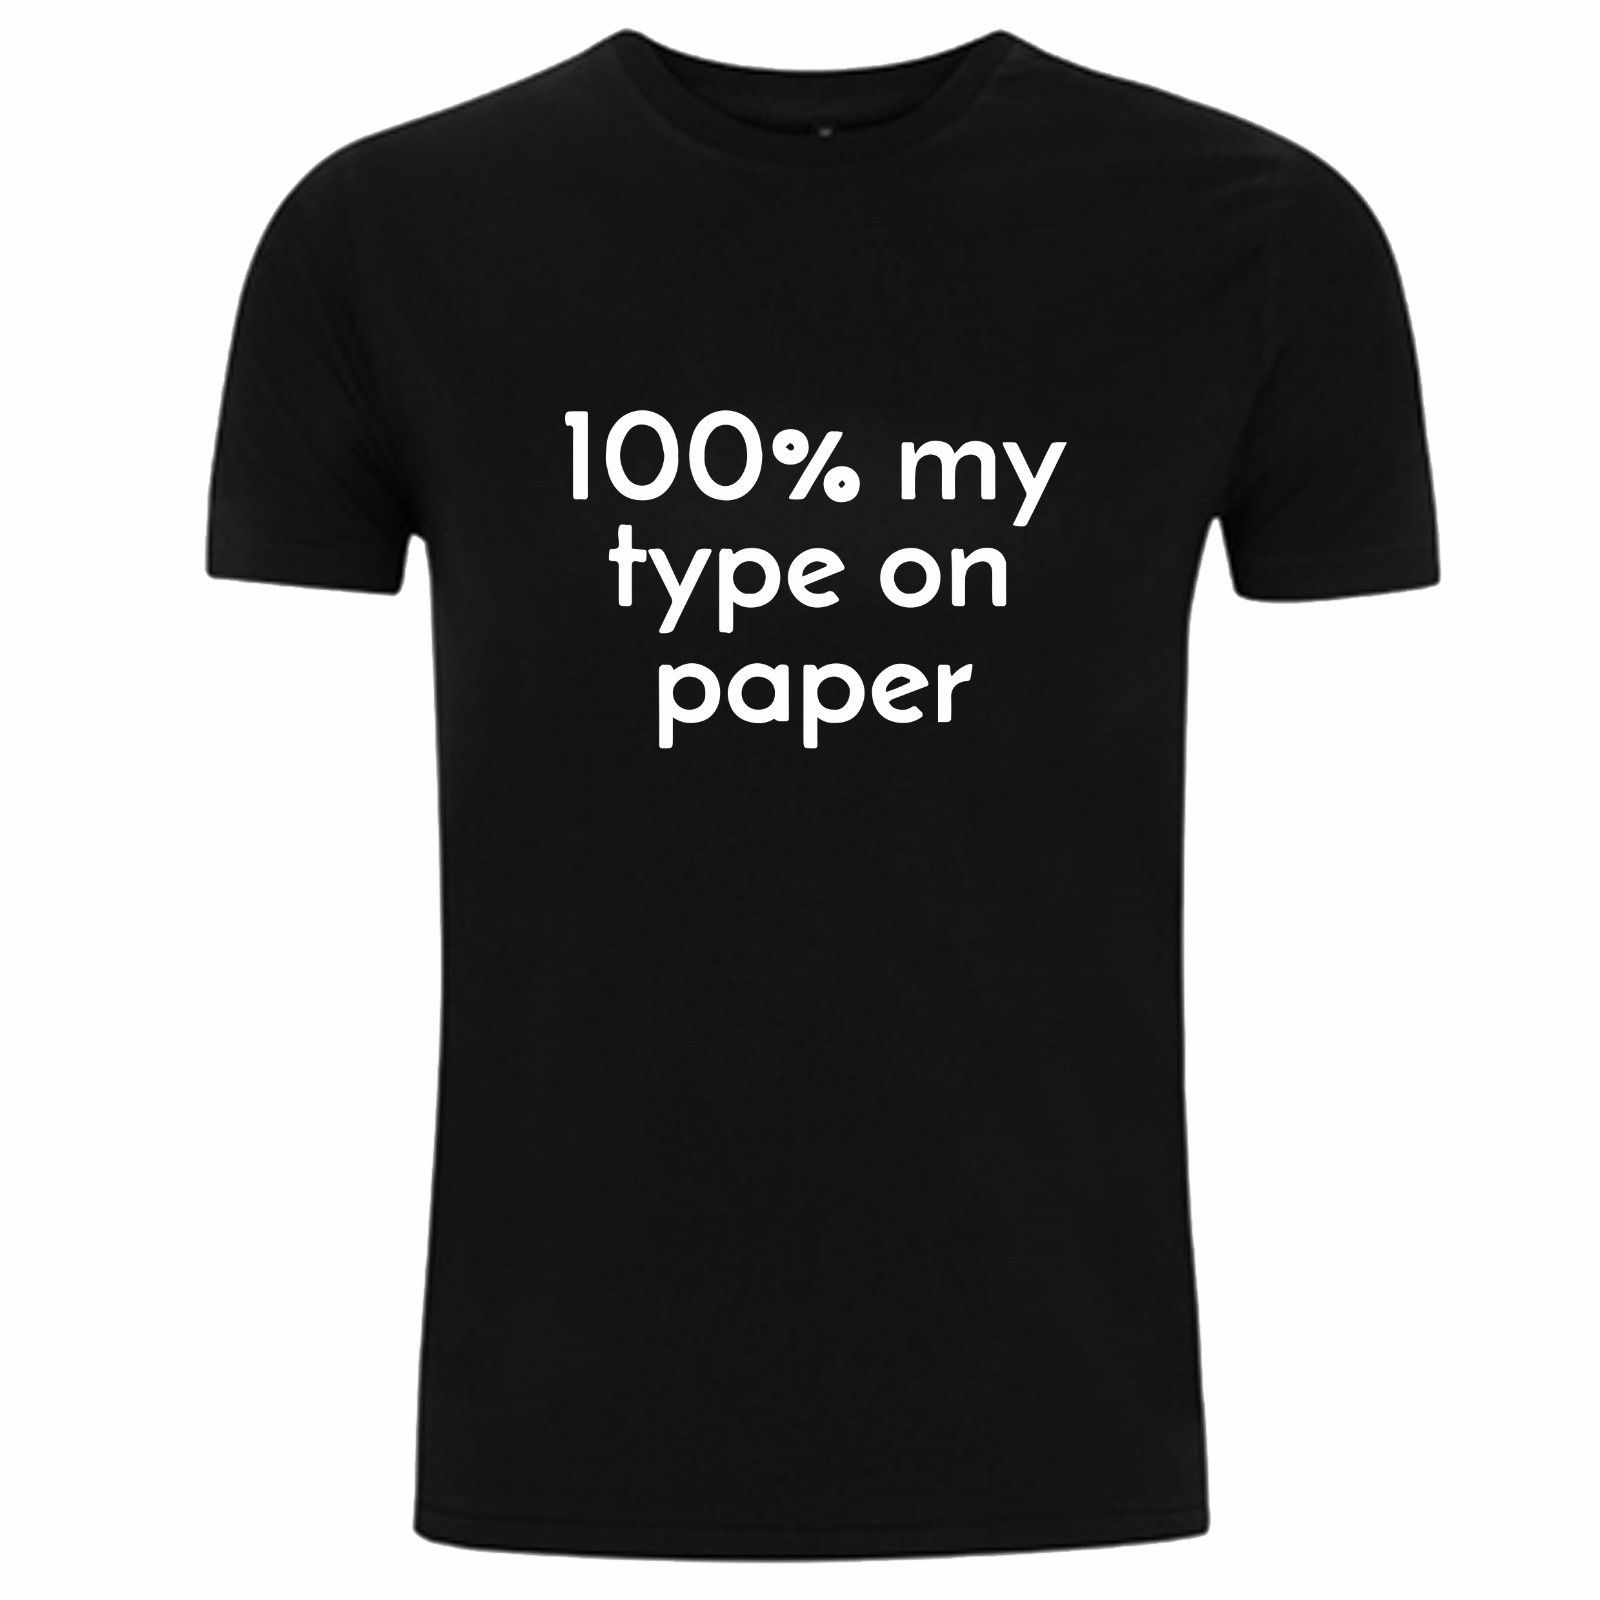 100% MY TYPE ON PAPER - FUNNY LOVE ISLAND T-SHIRT AMBER DAVIES QUOTE 100% COTTON Cool Casual pride t shirt men Unisex New